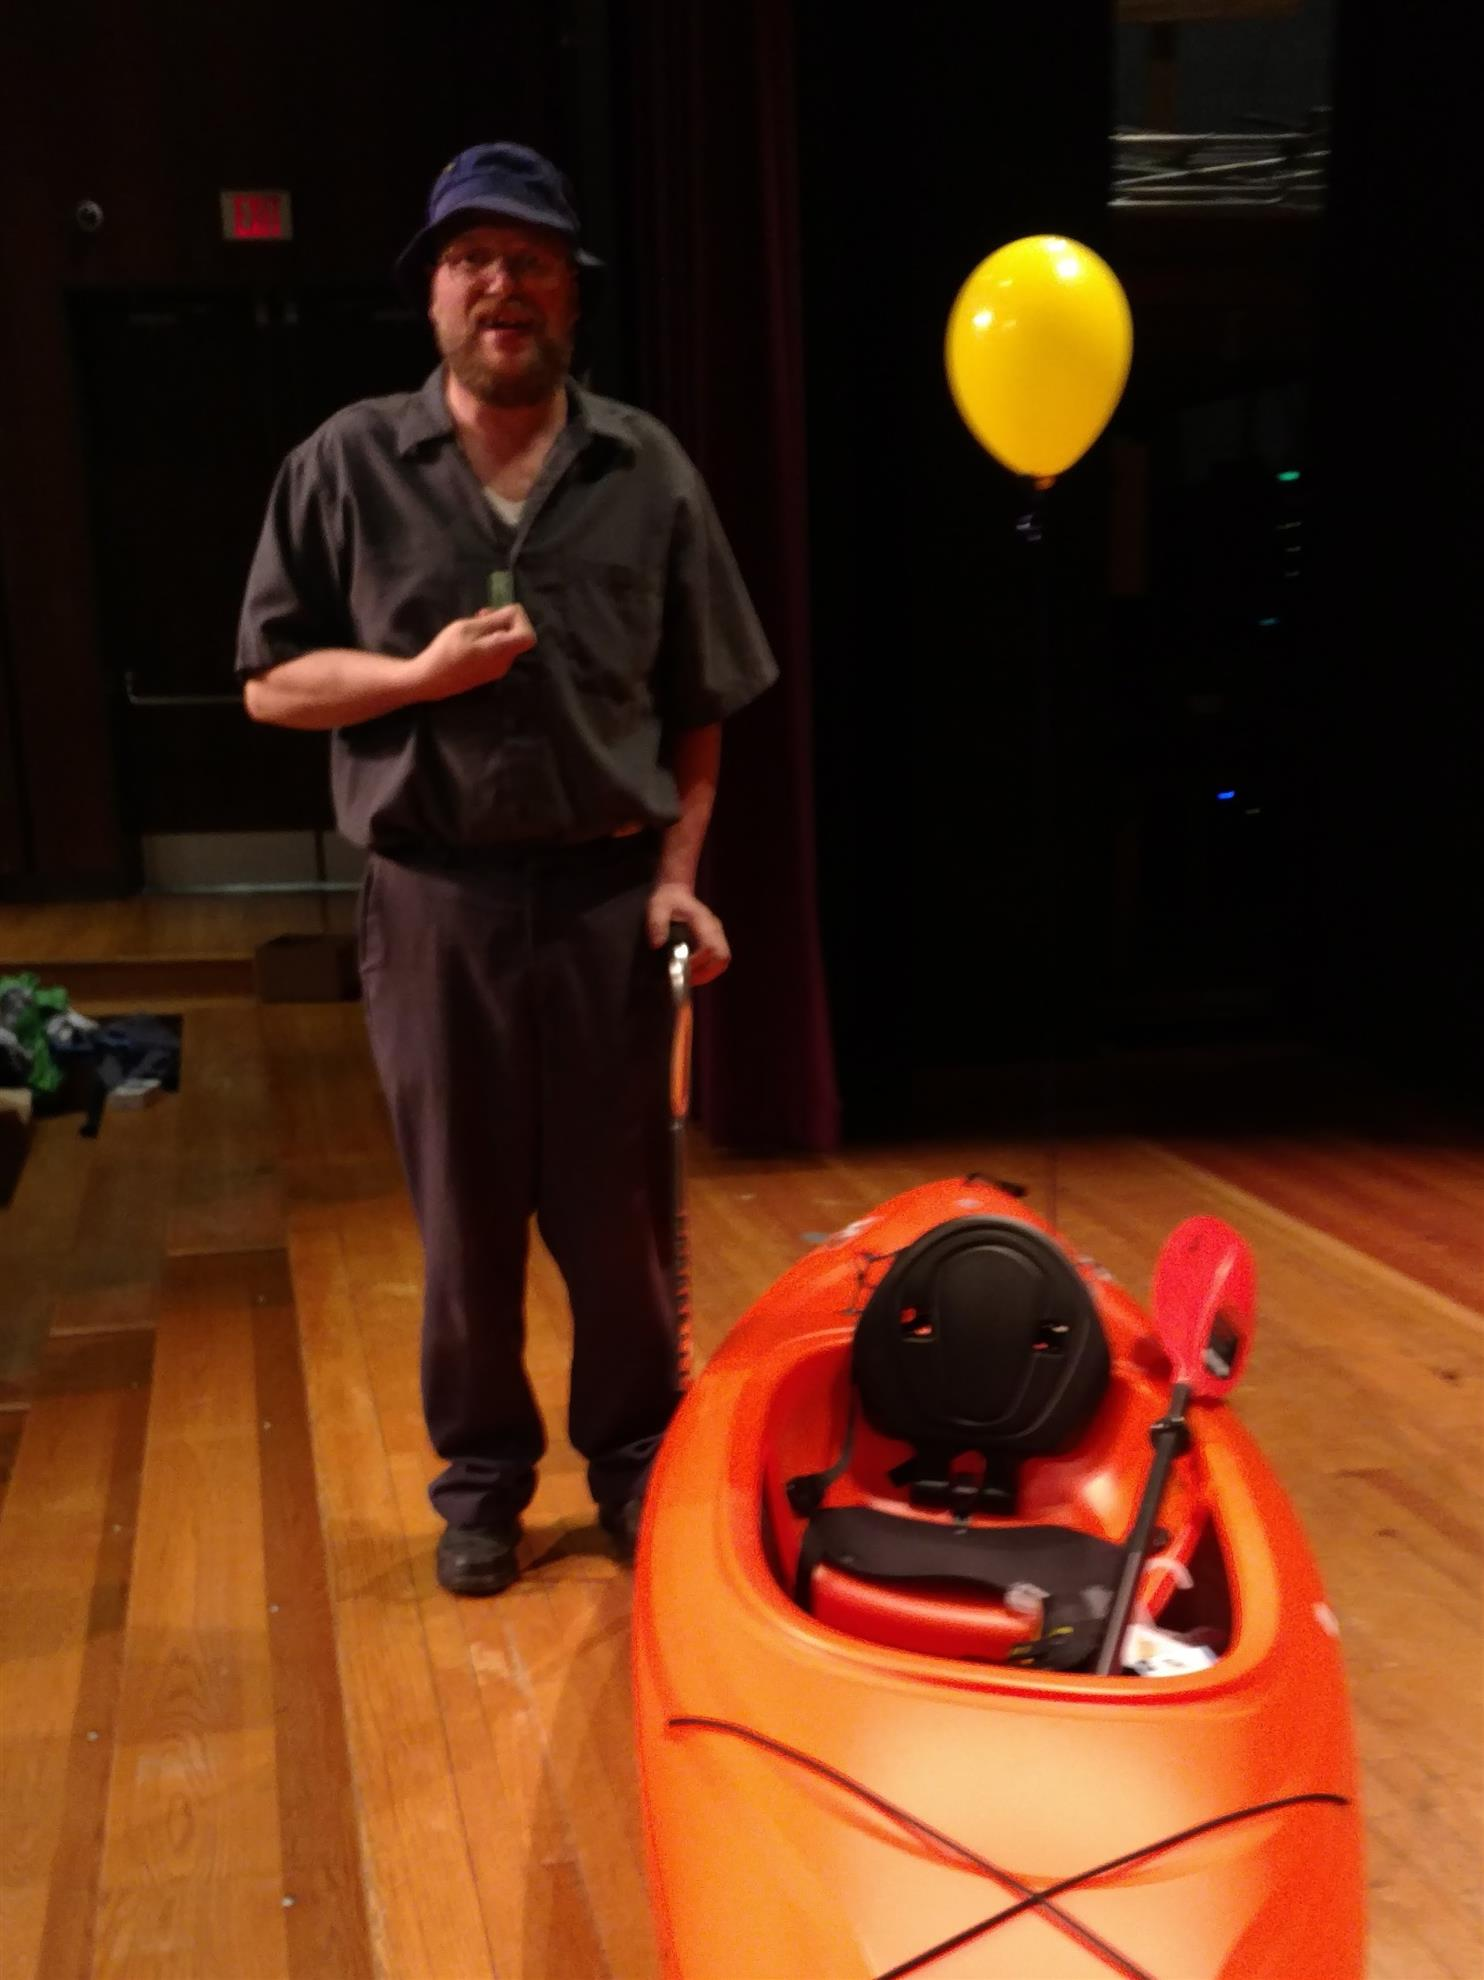 photo of flight 3 grand prize winner with kayak